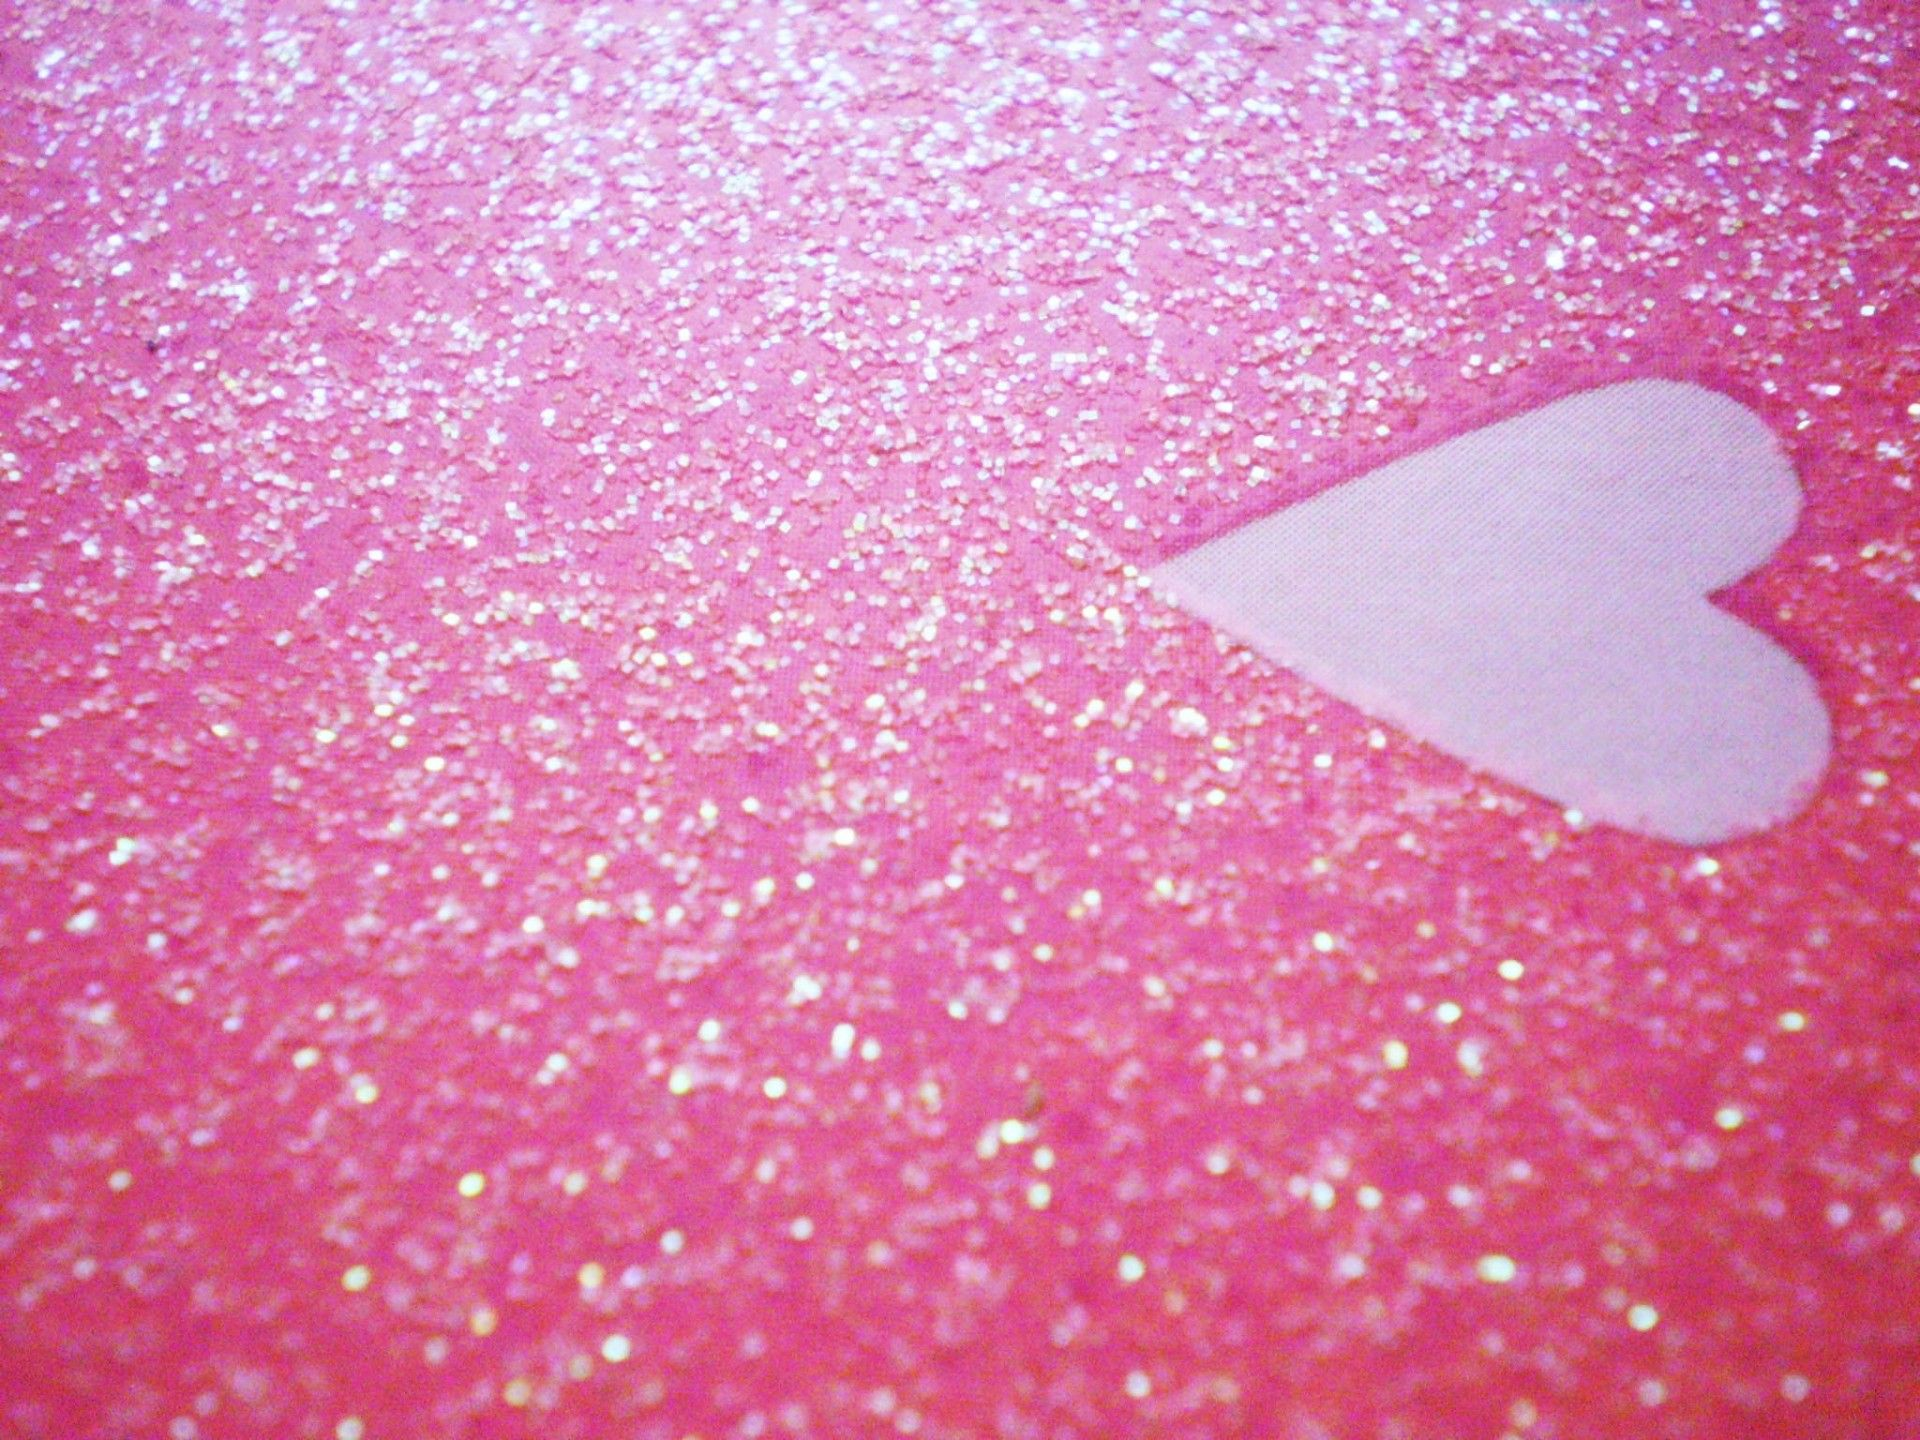 Cute Glitter Wallpapers 20 Wallpapers Adorable Wallpapers